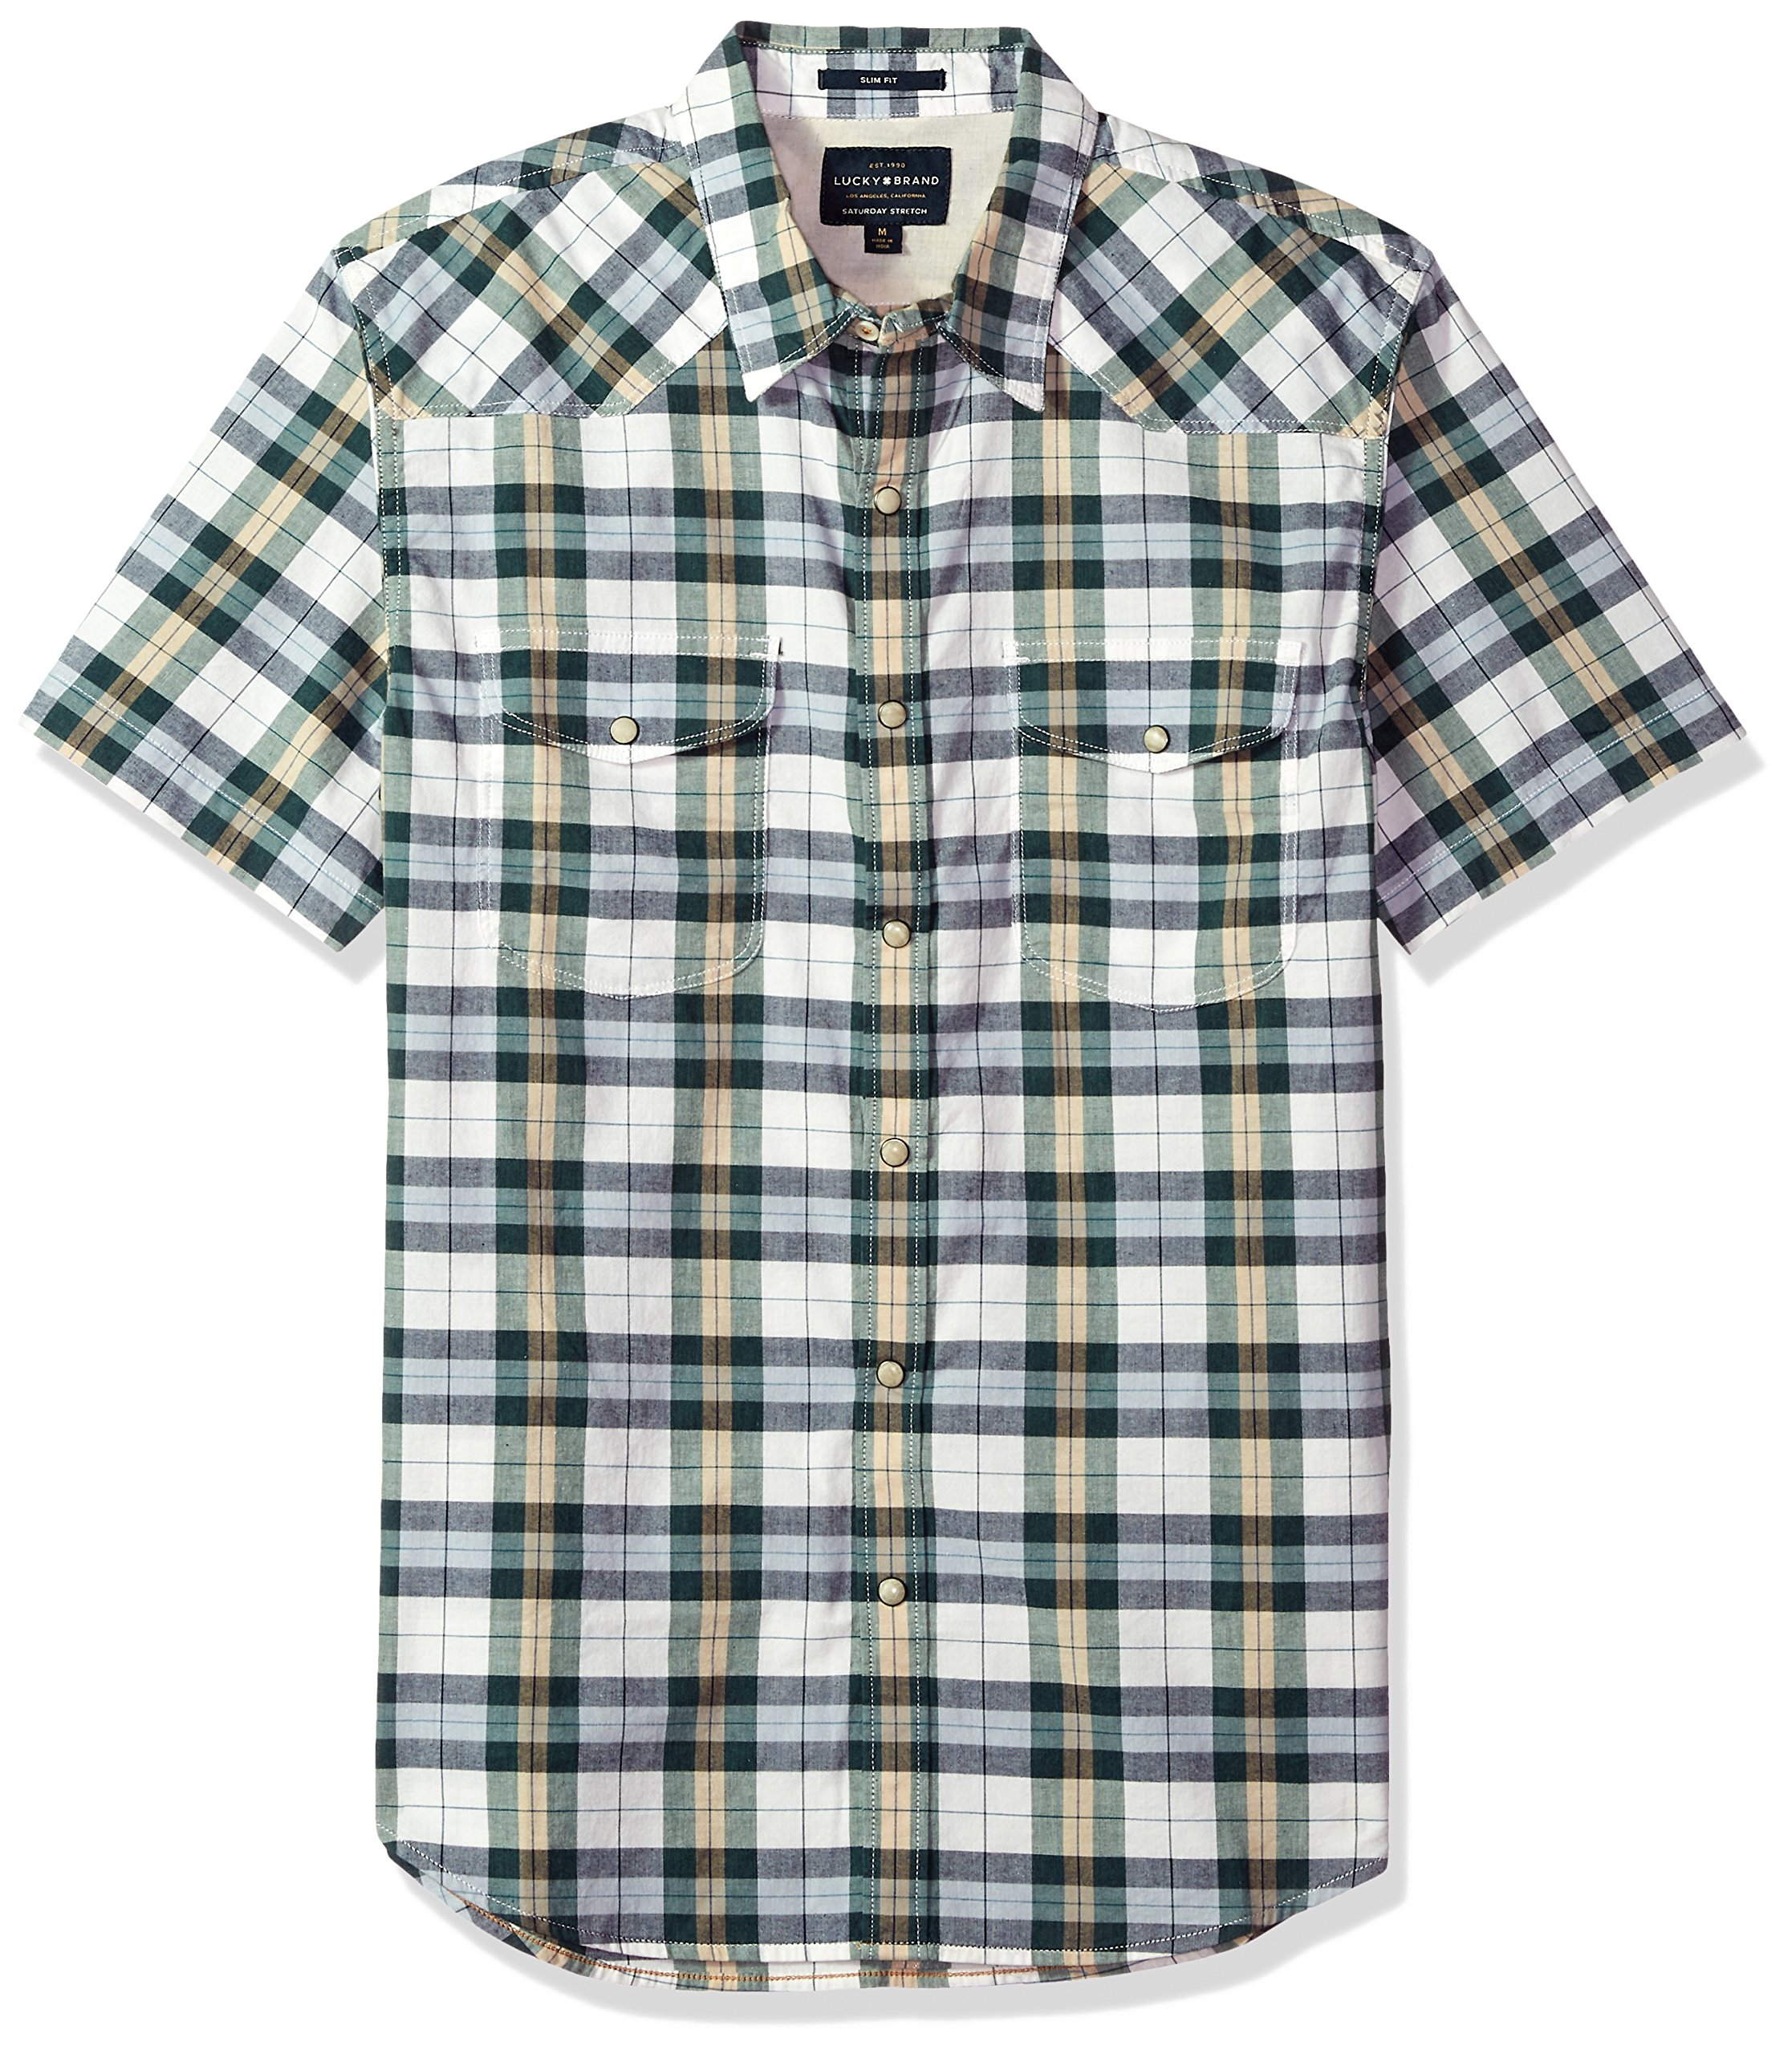 Lucky Brand Men's Short Sleeve Plaid Western Button Down Shirt in Green Multi, Natural/Green, L